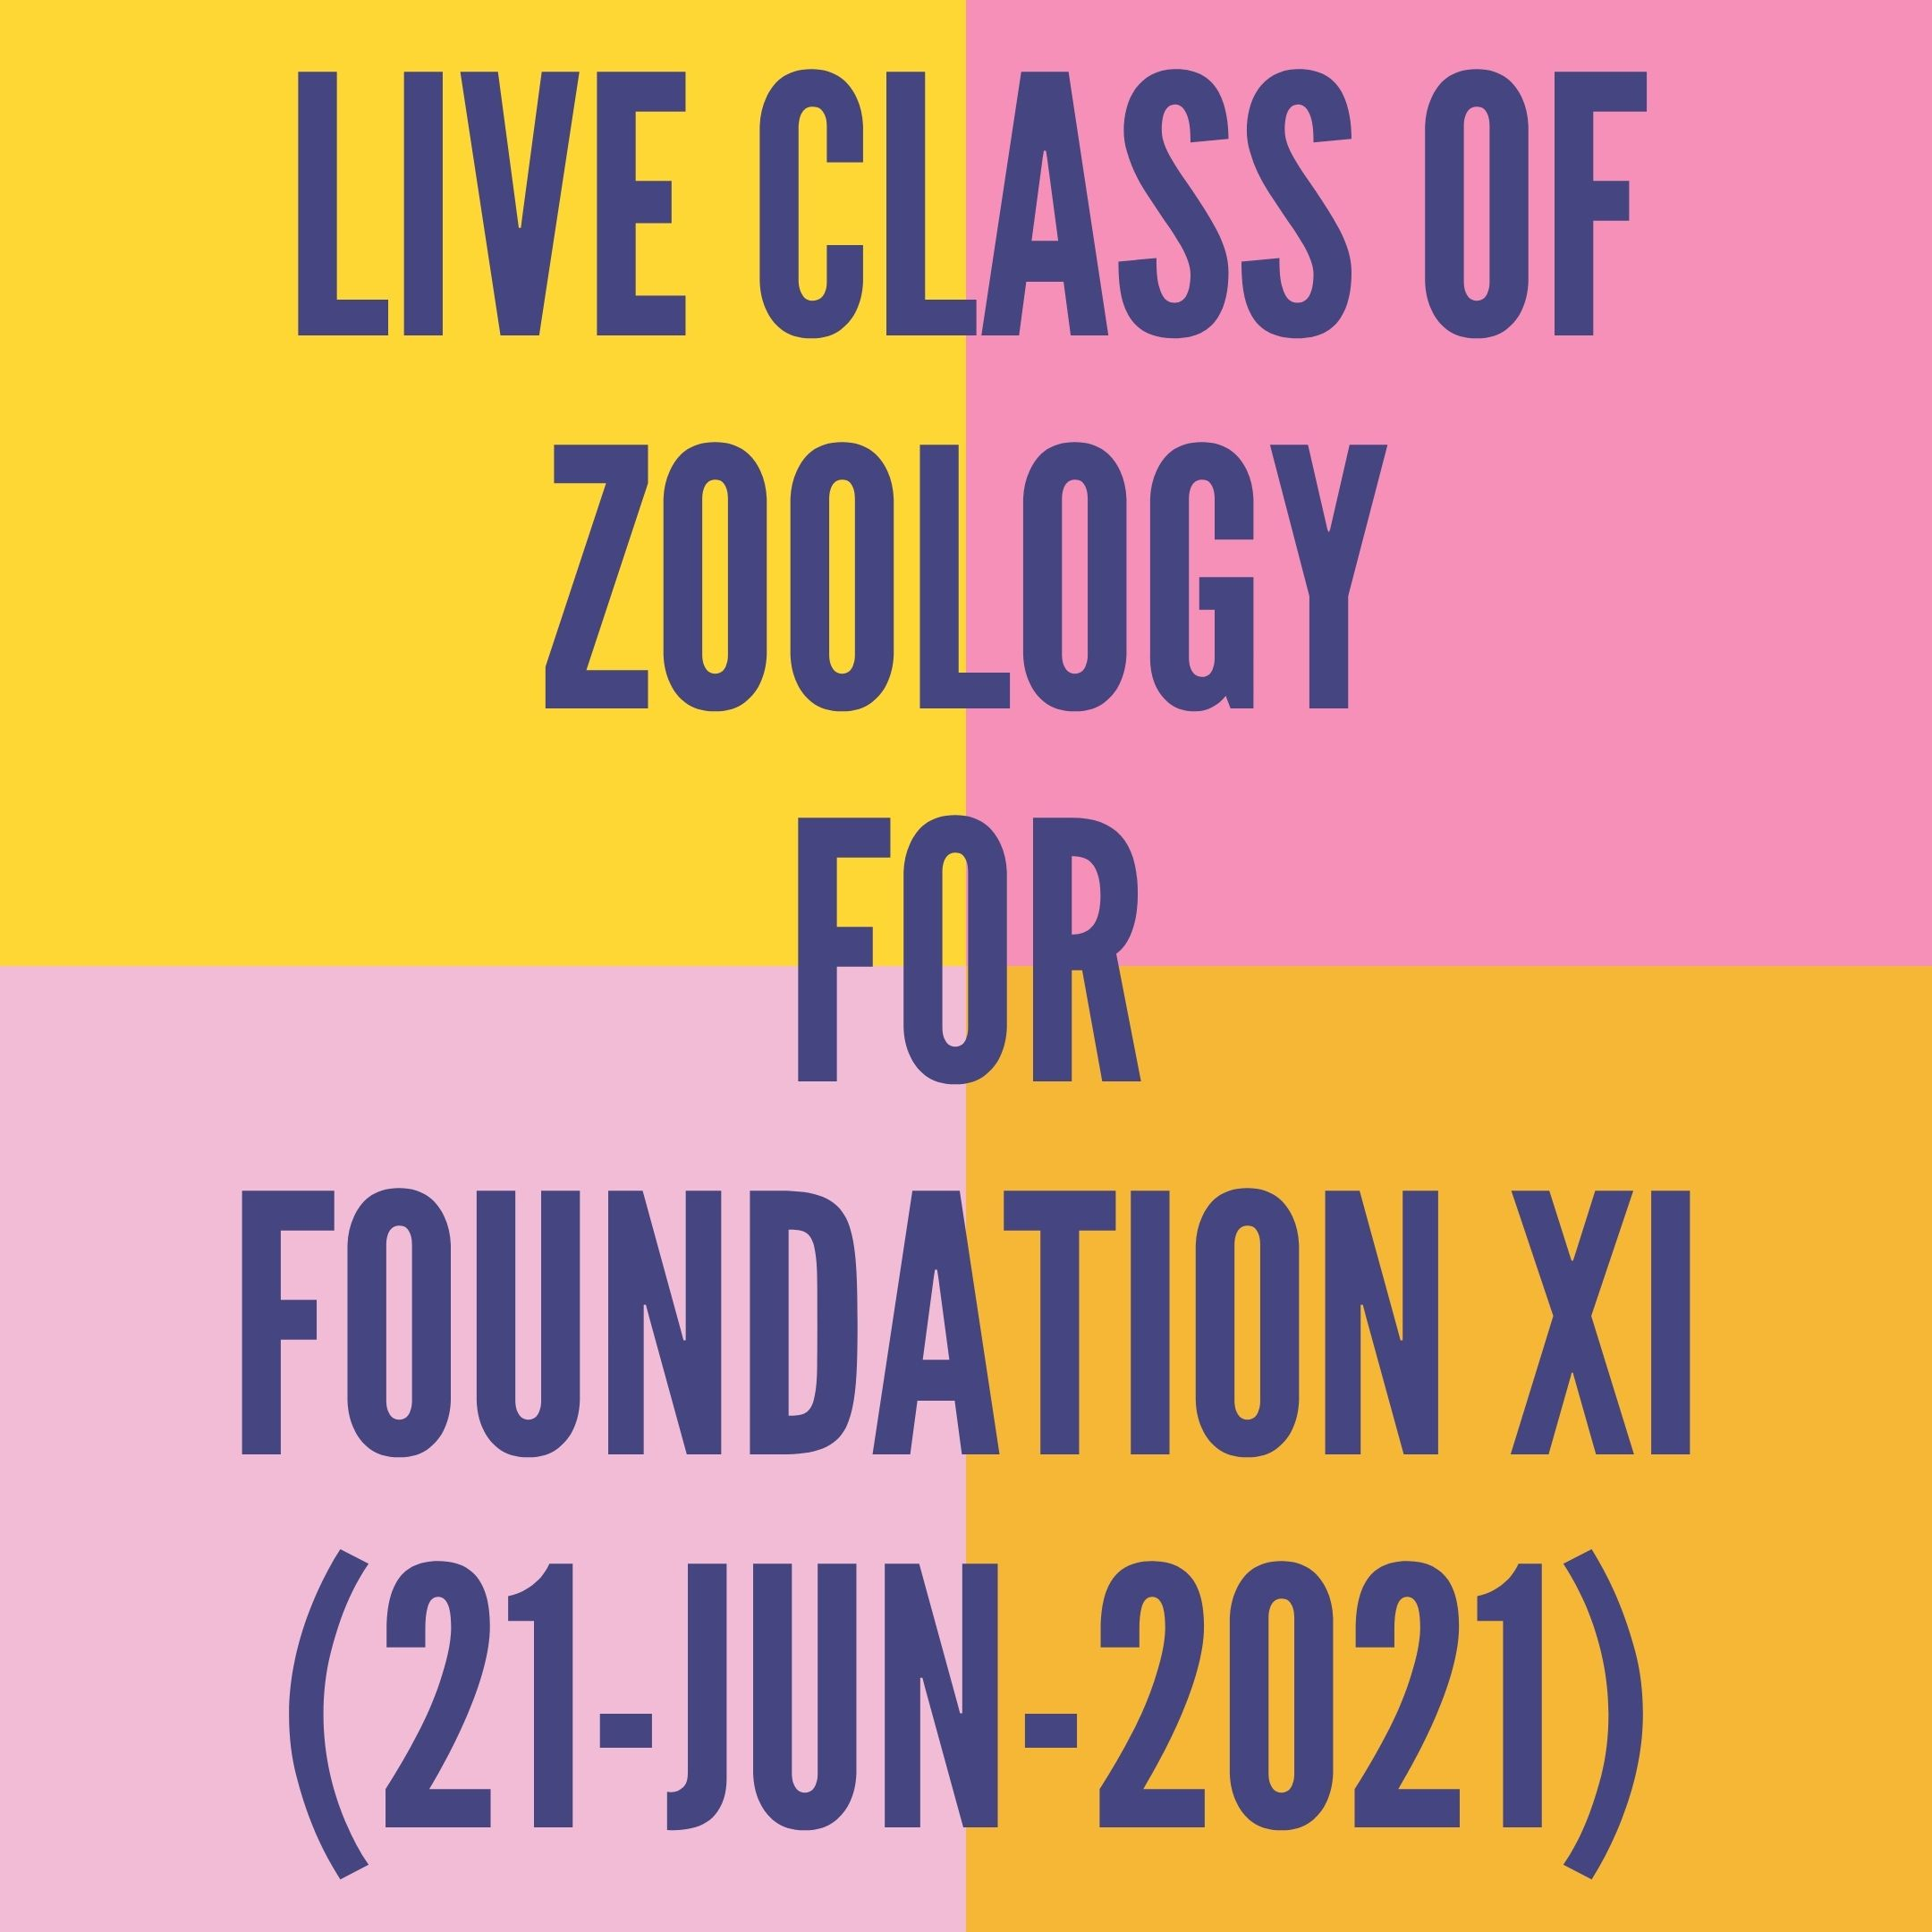 LIVE CLASS OF ZOOLOGY FOR FOUNDATION XI (21-JUN-2021) DIGESTIVE SYSTEM